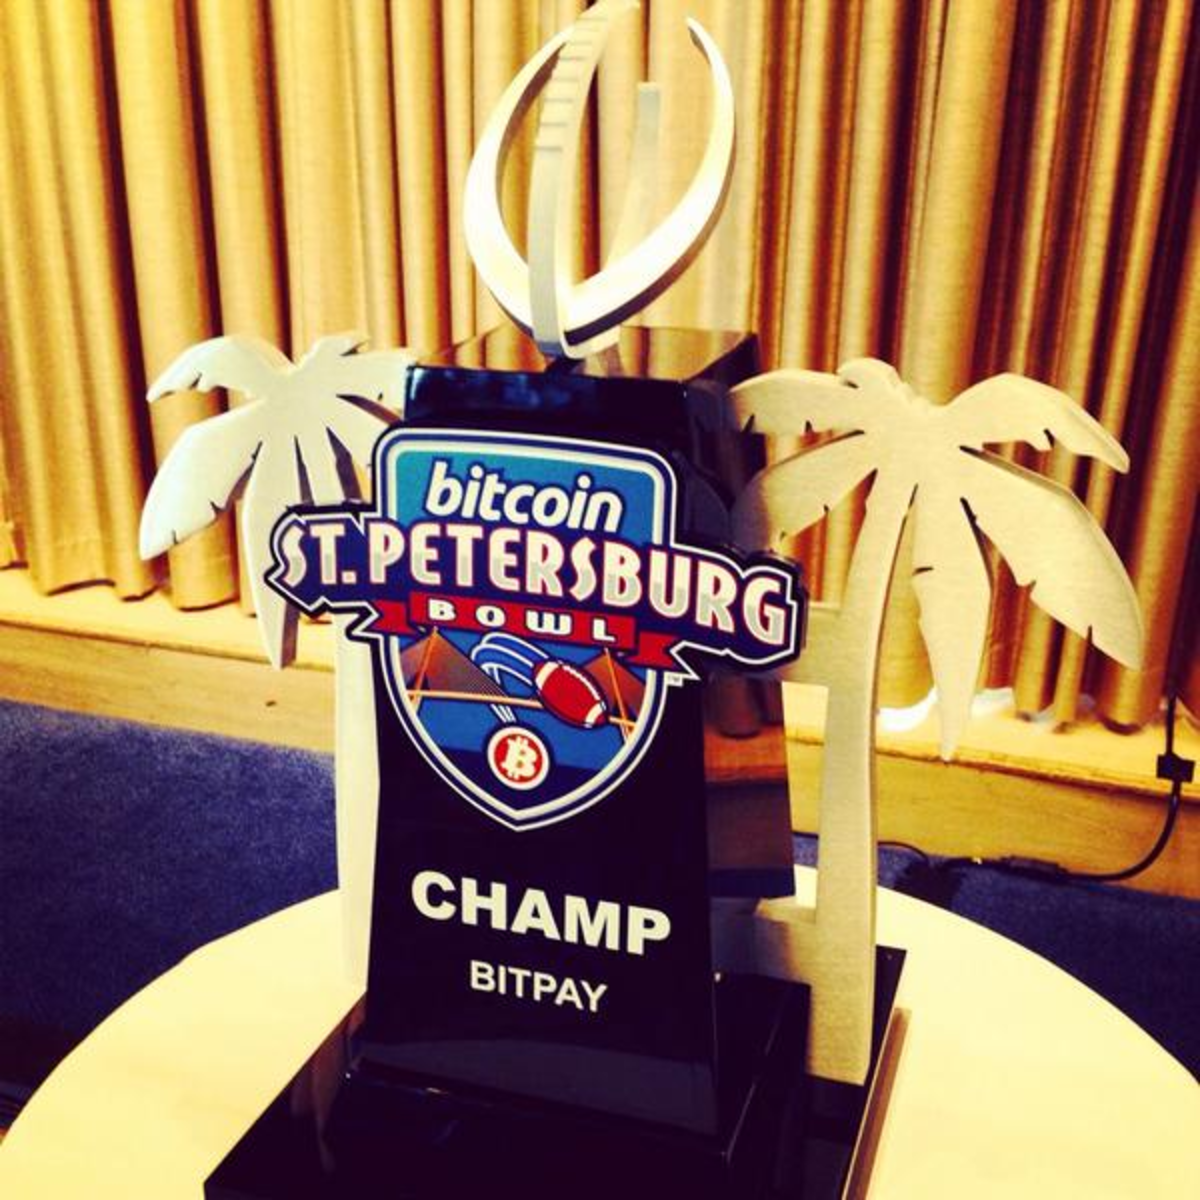 The Bitcoin Bowl trophy